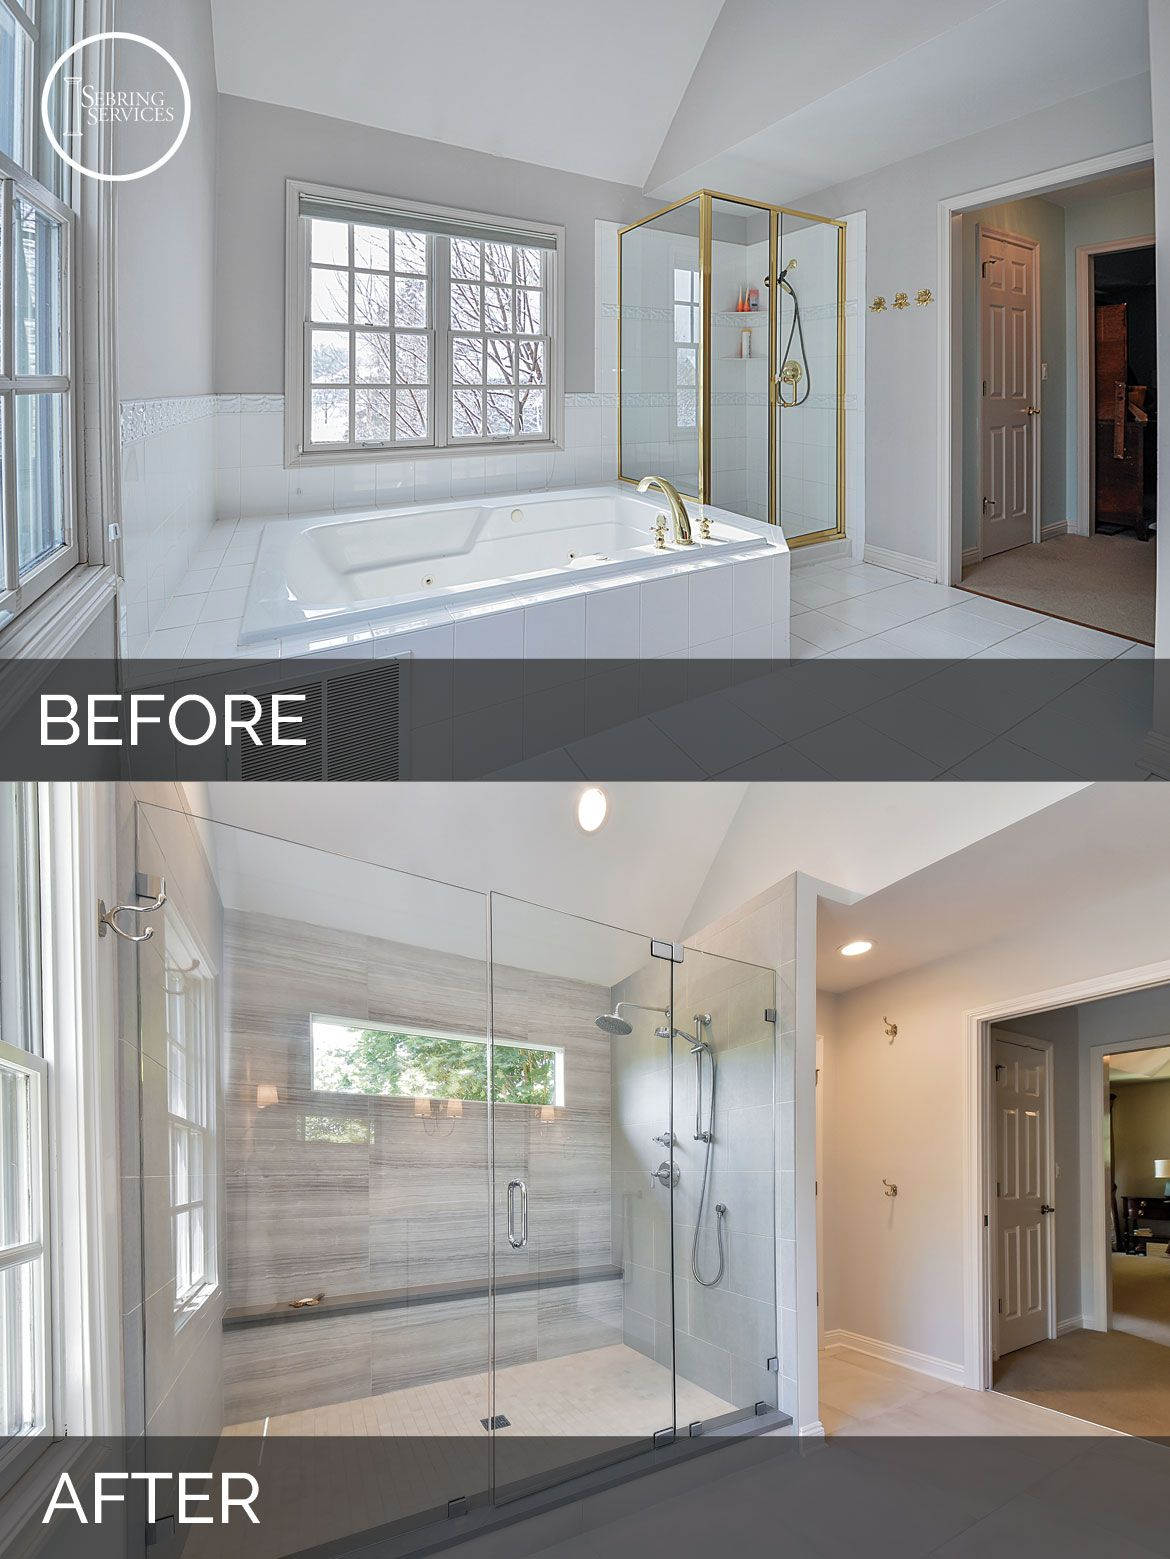 Carl susan 39 s master bath before after pictures for Bath renovations